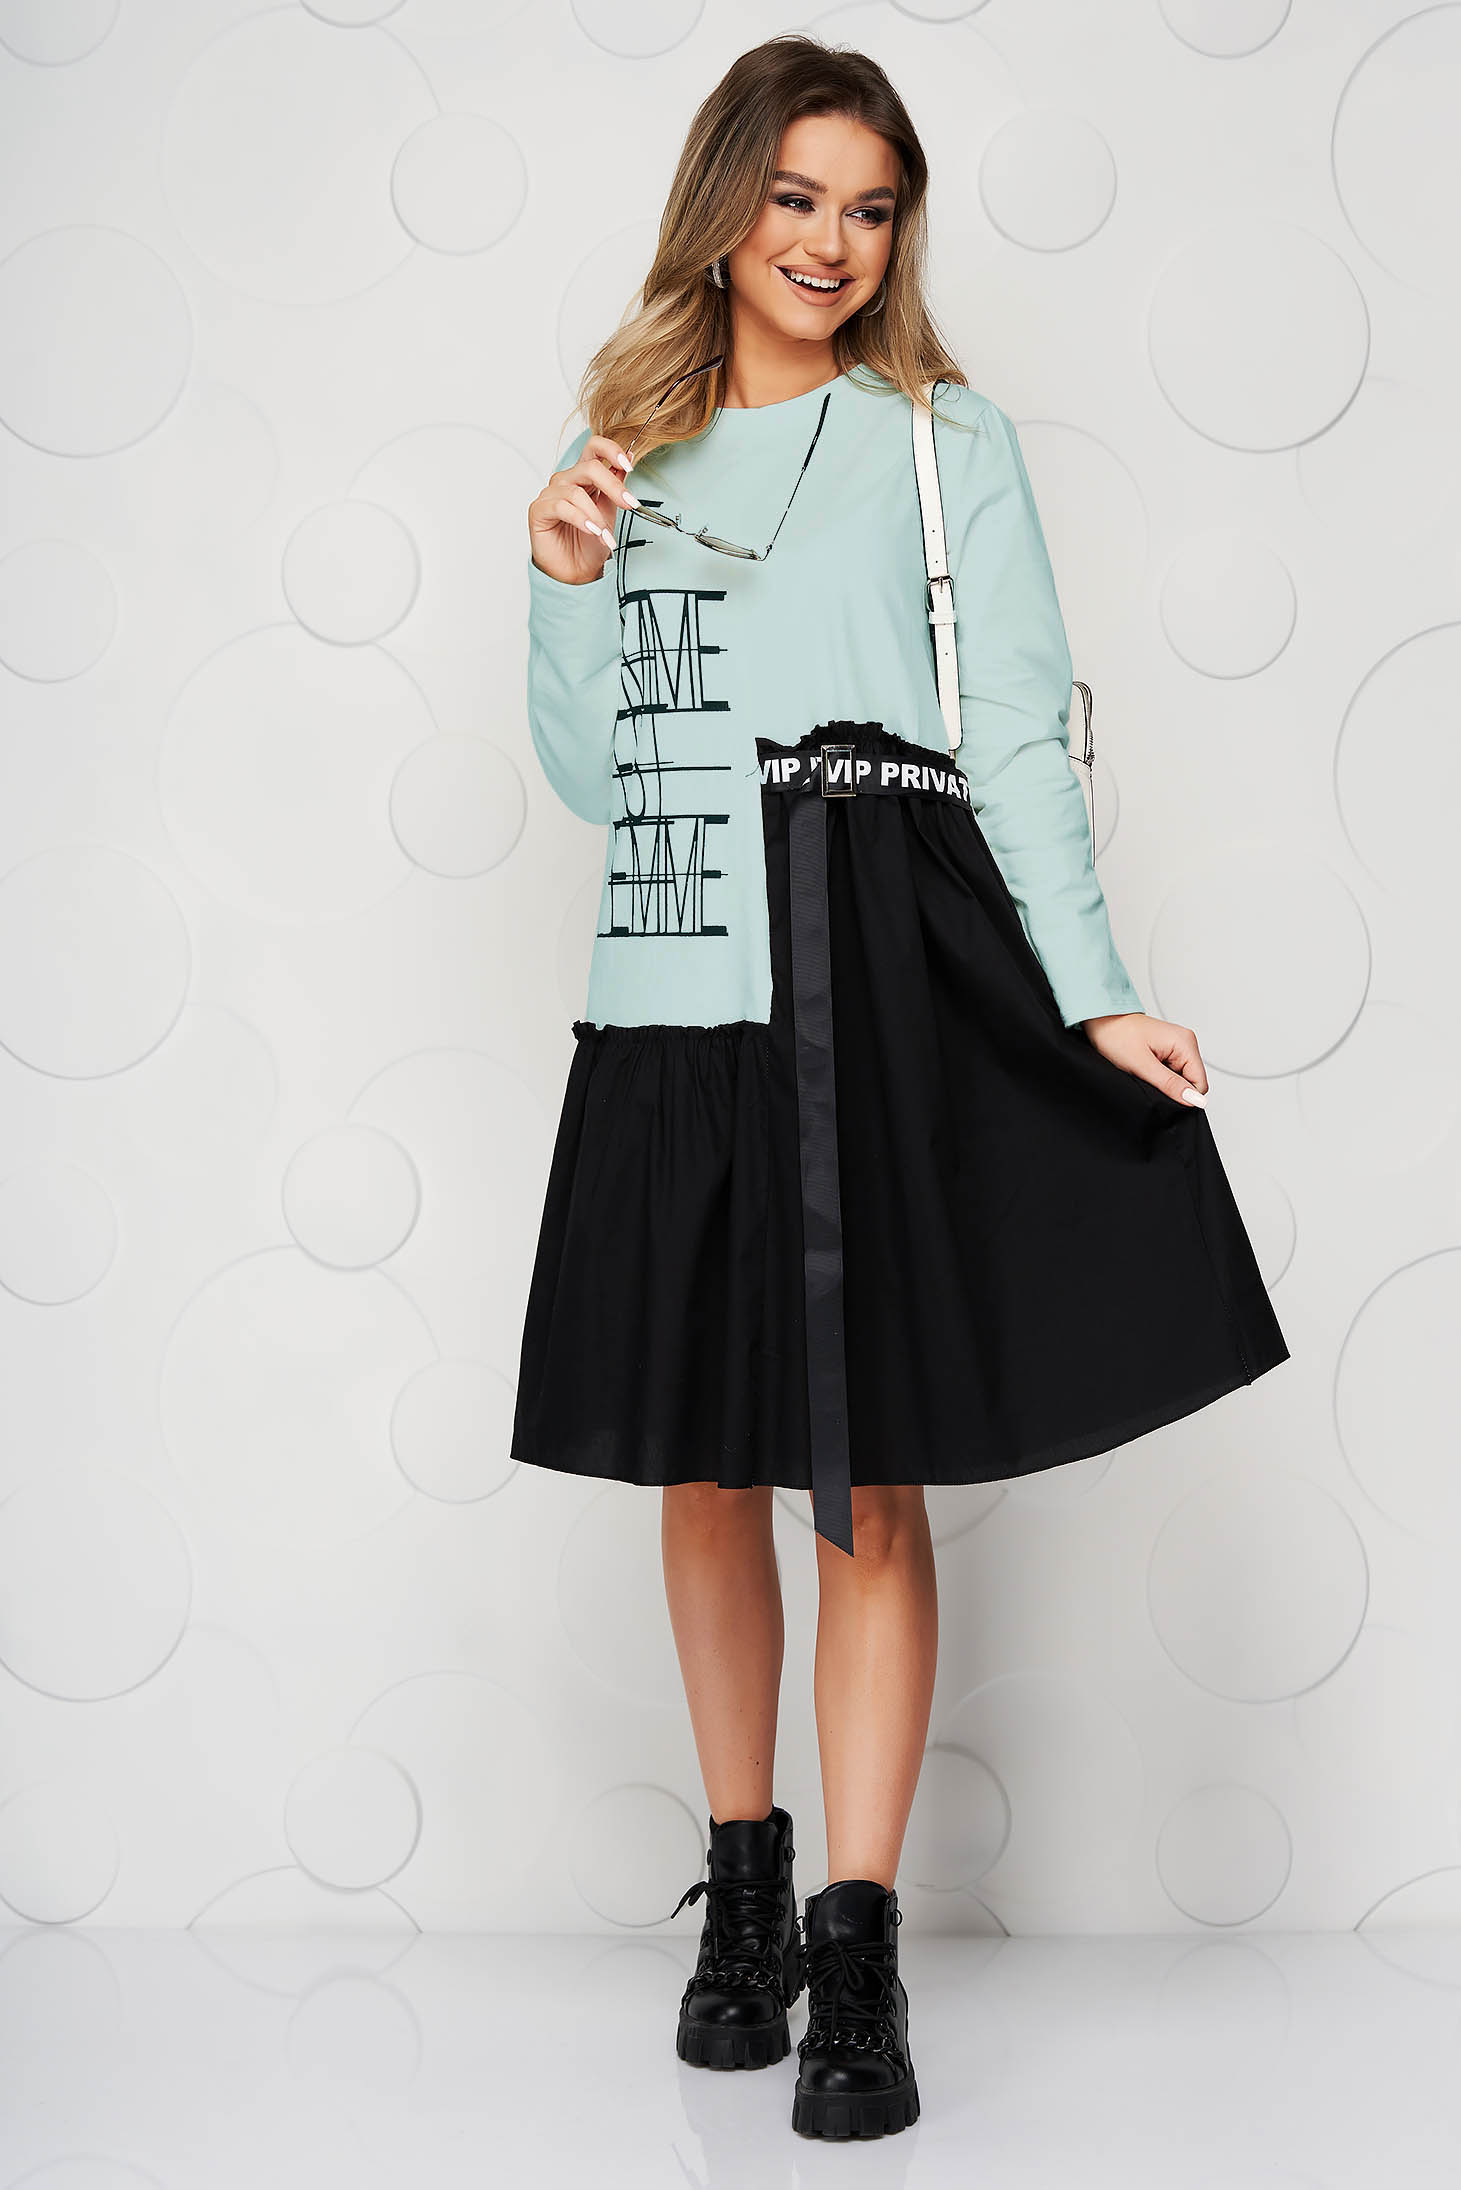 Turquoise dress elastic cotton with ruffle details loose fit with graphic details